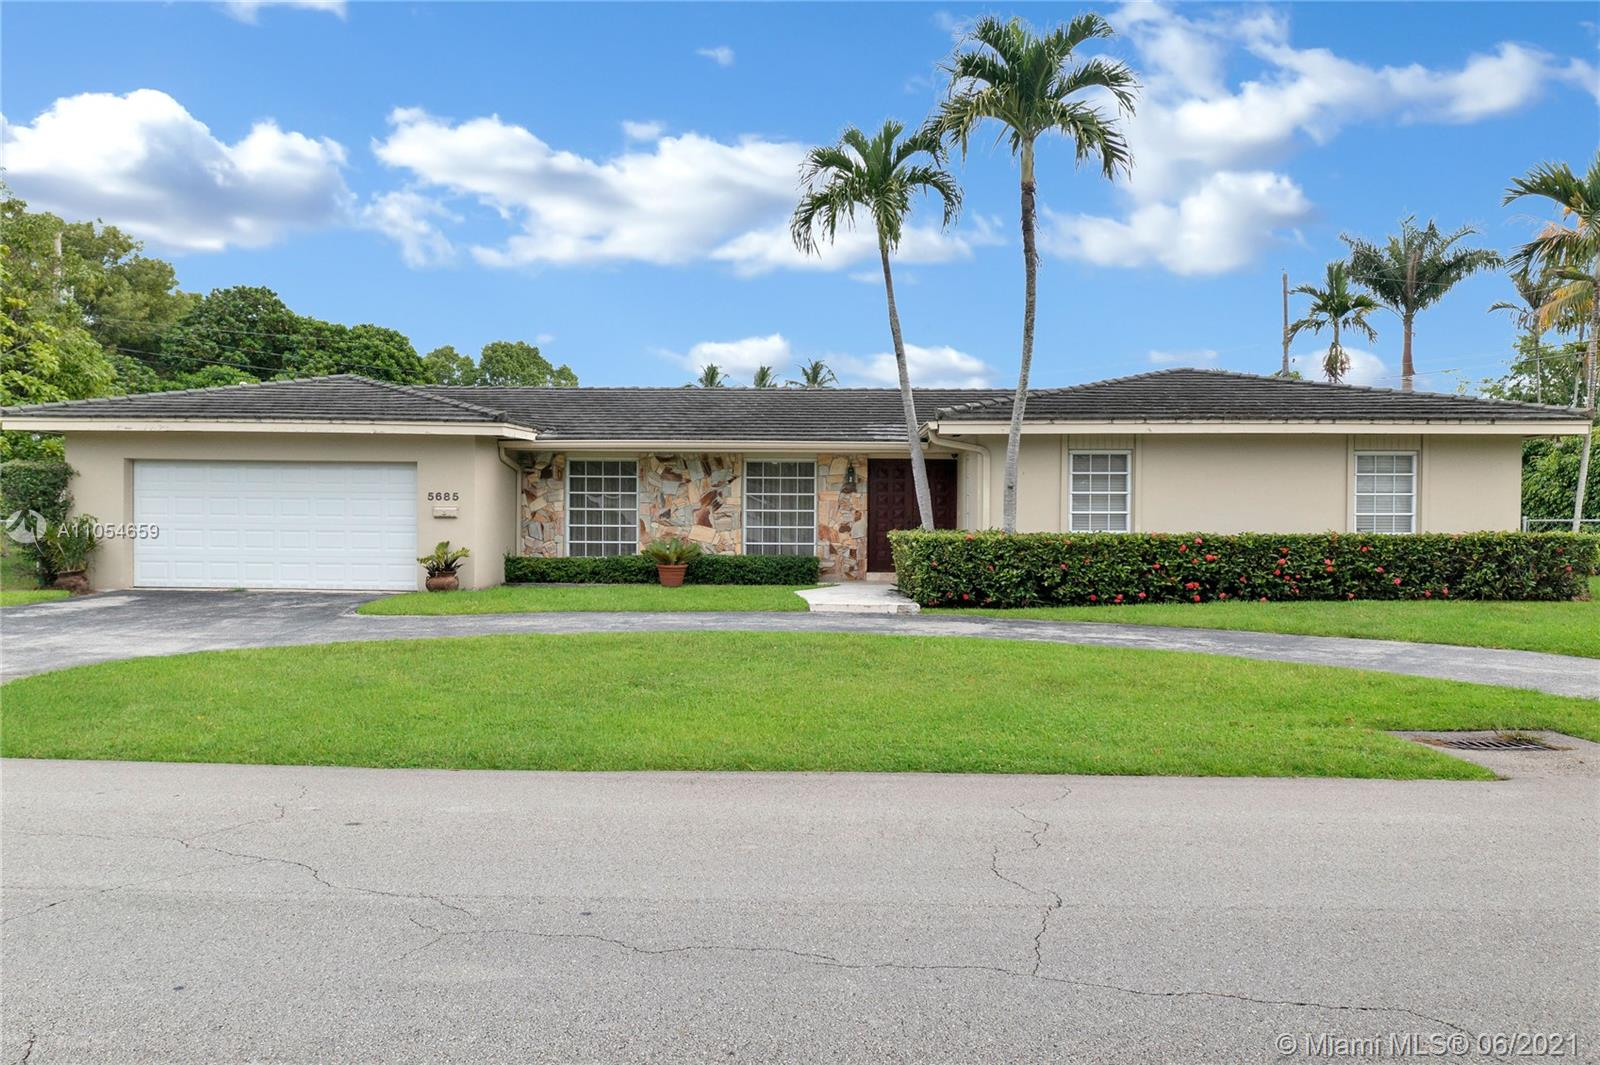 5685 SW 86th St  For Sale A11054659, FL